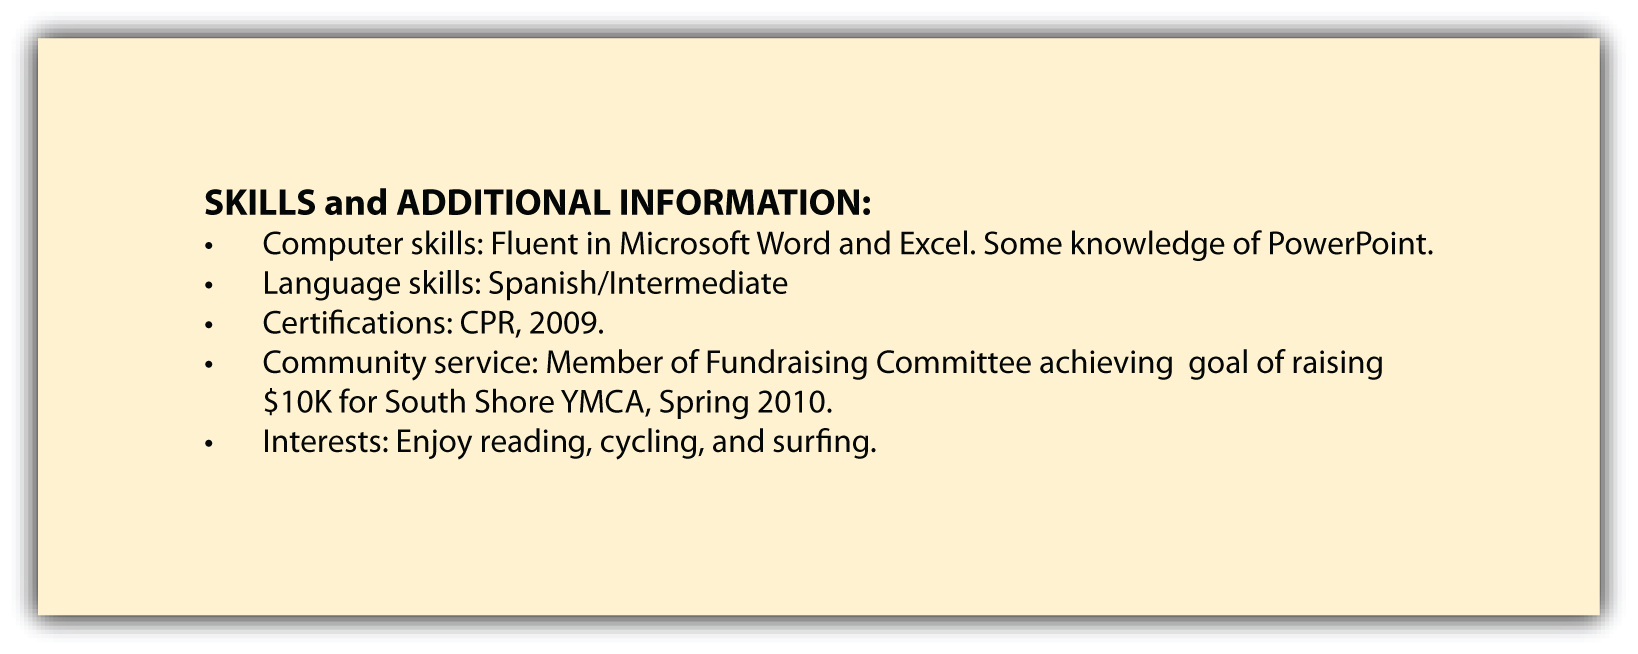 skills additional information and references capabilities examples for resume should you Resume Capabilities Examples For Resume